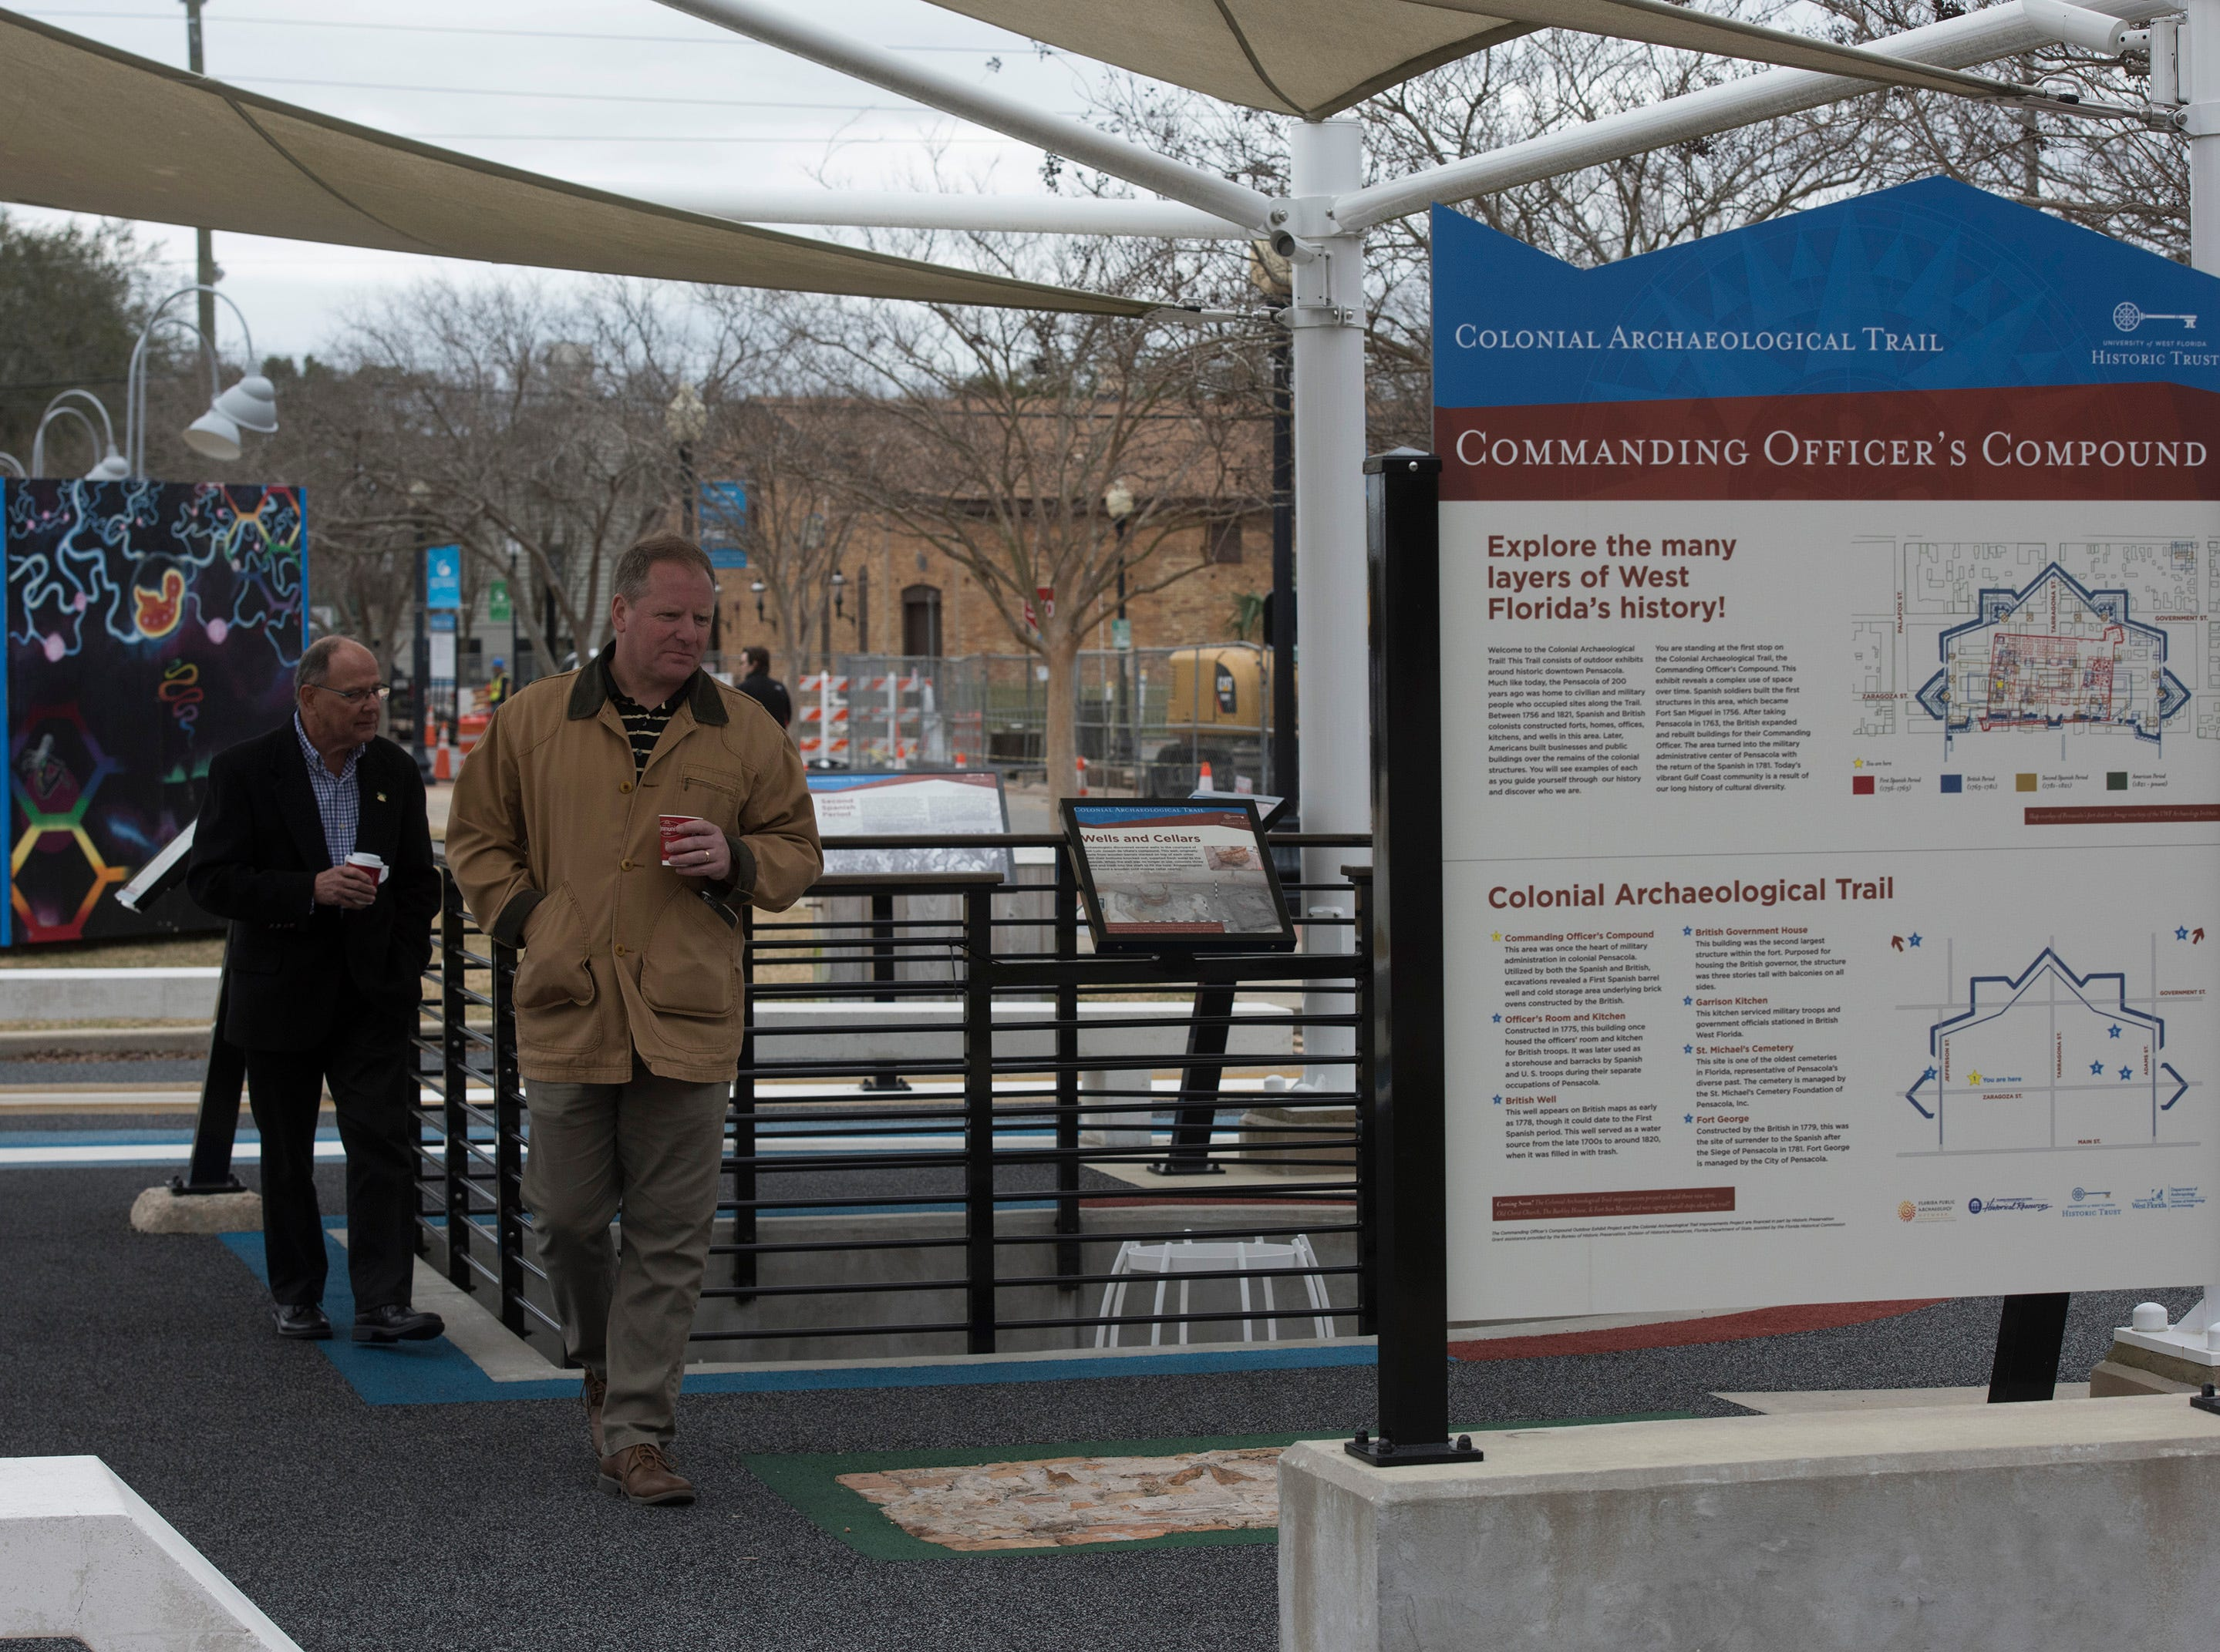 Visitors explore the offering at the new Museum Plaza behind The T. T. Wentworth Jr. Florida State Museum in downtown Pensacola on Friday, Feb. 8, 2019. The University of West Florida officially dedicated the new park space during a ceremony on Friday.